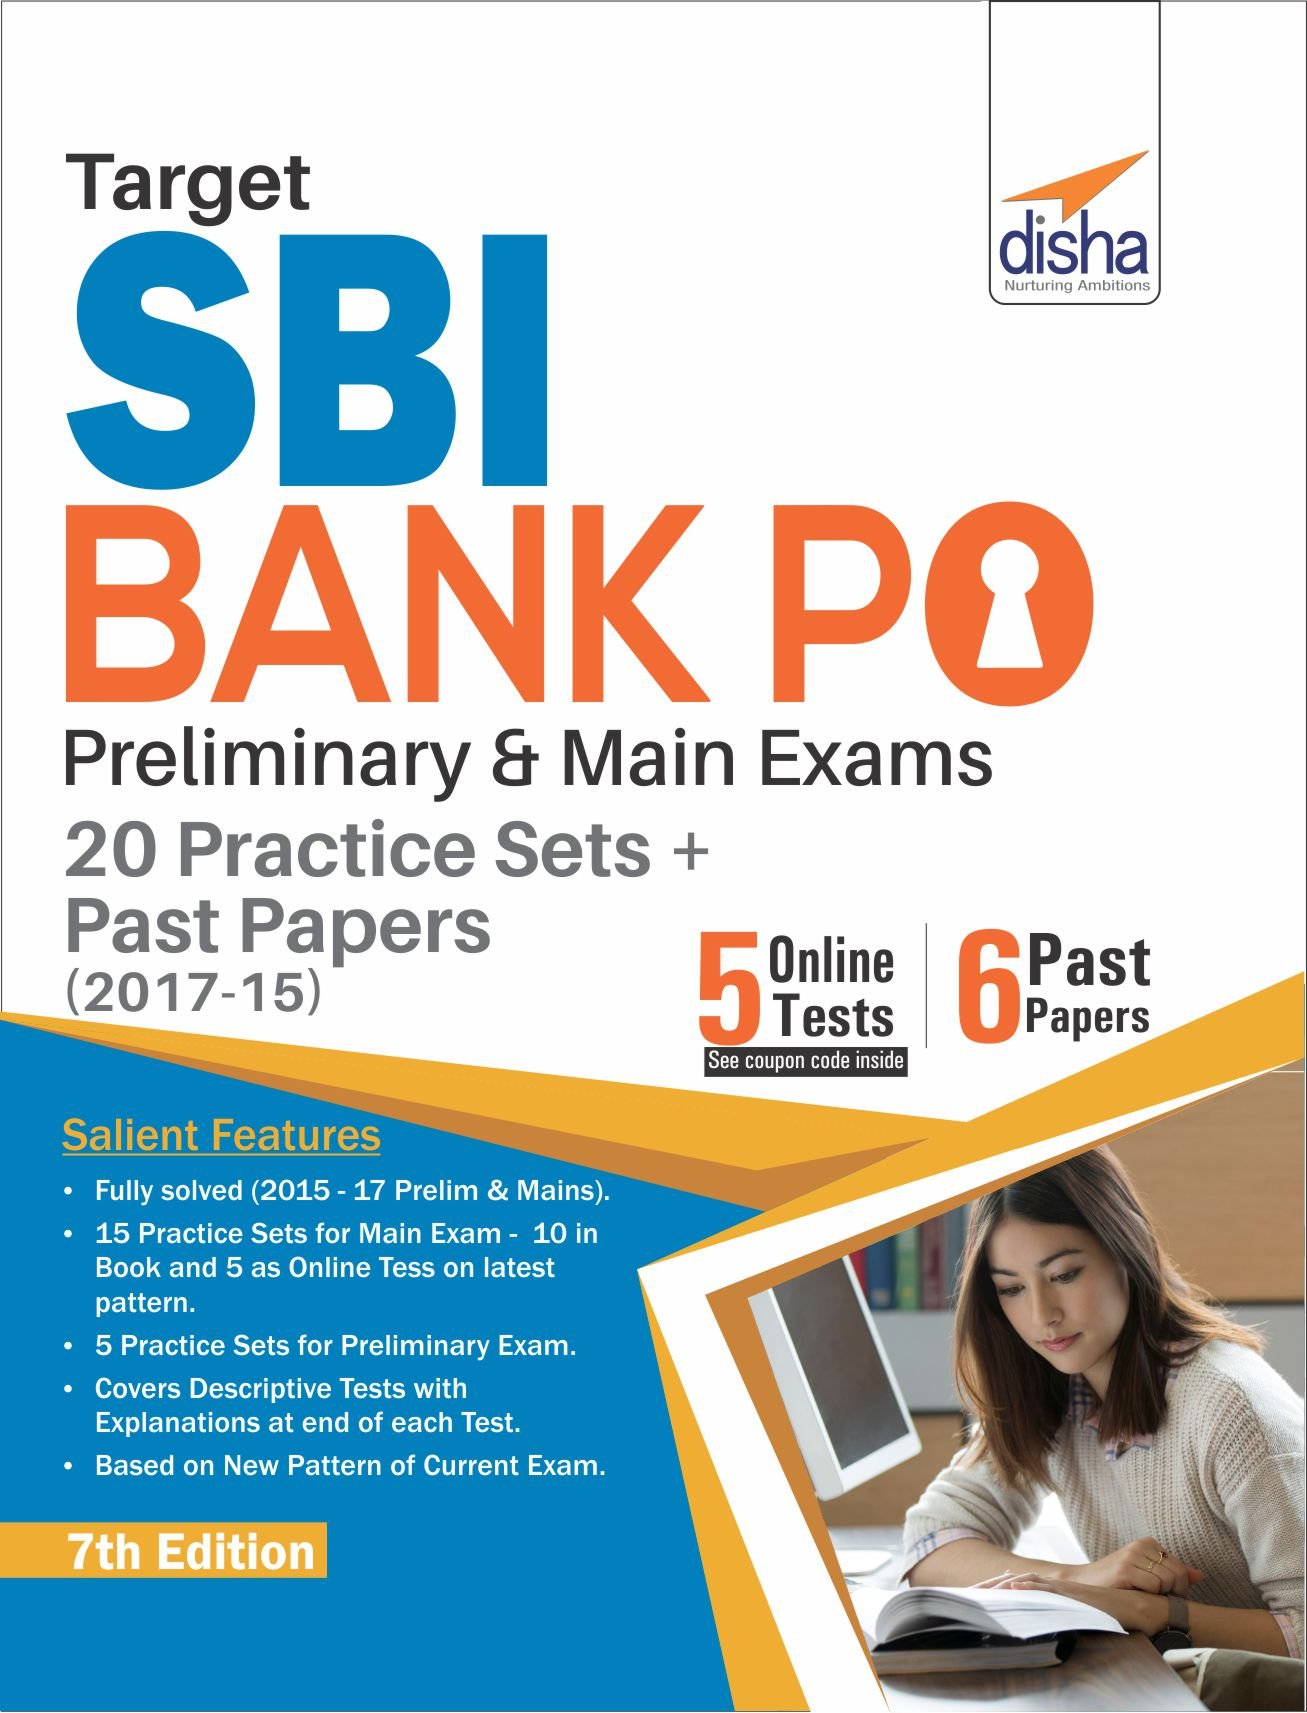 Buy target sbi bank po preliminary main exam 20 practice sets buy target sbi bank po preliminary main exam 20 practice sets past papers 2017 15 english 7th edition book online at low prices in india target fandeluxe Images